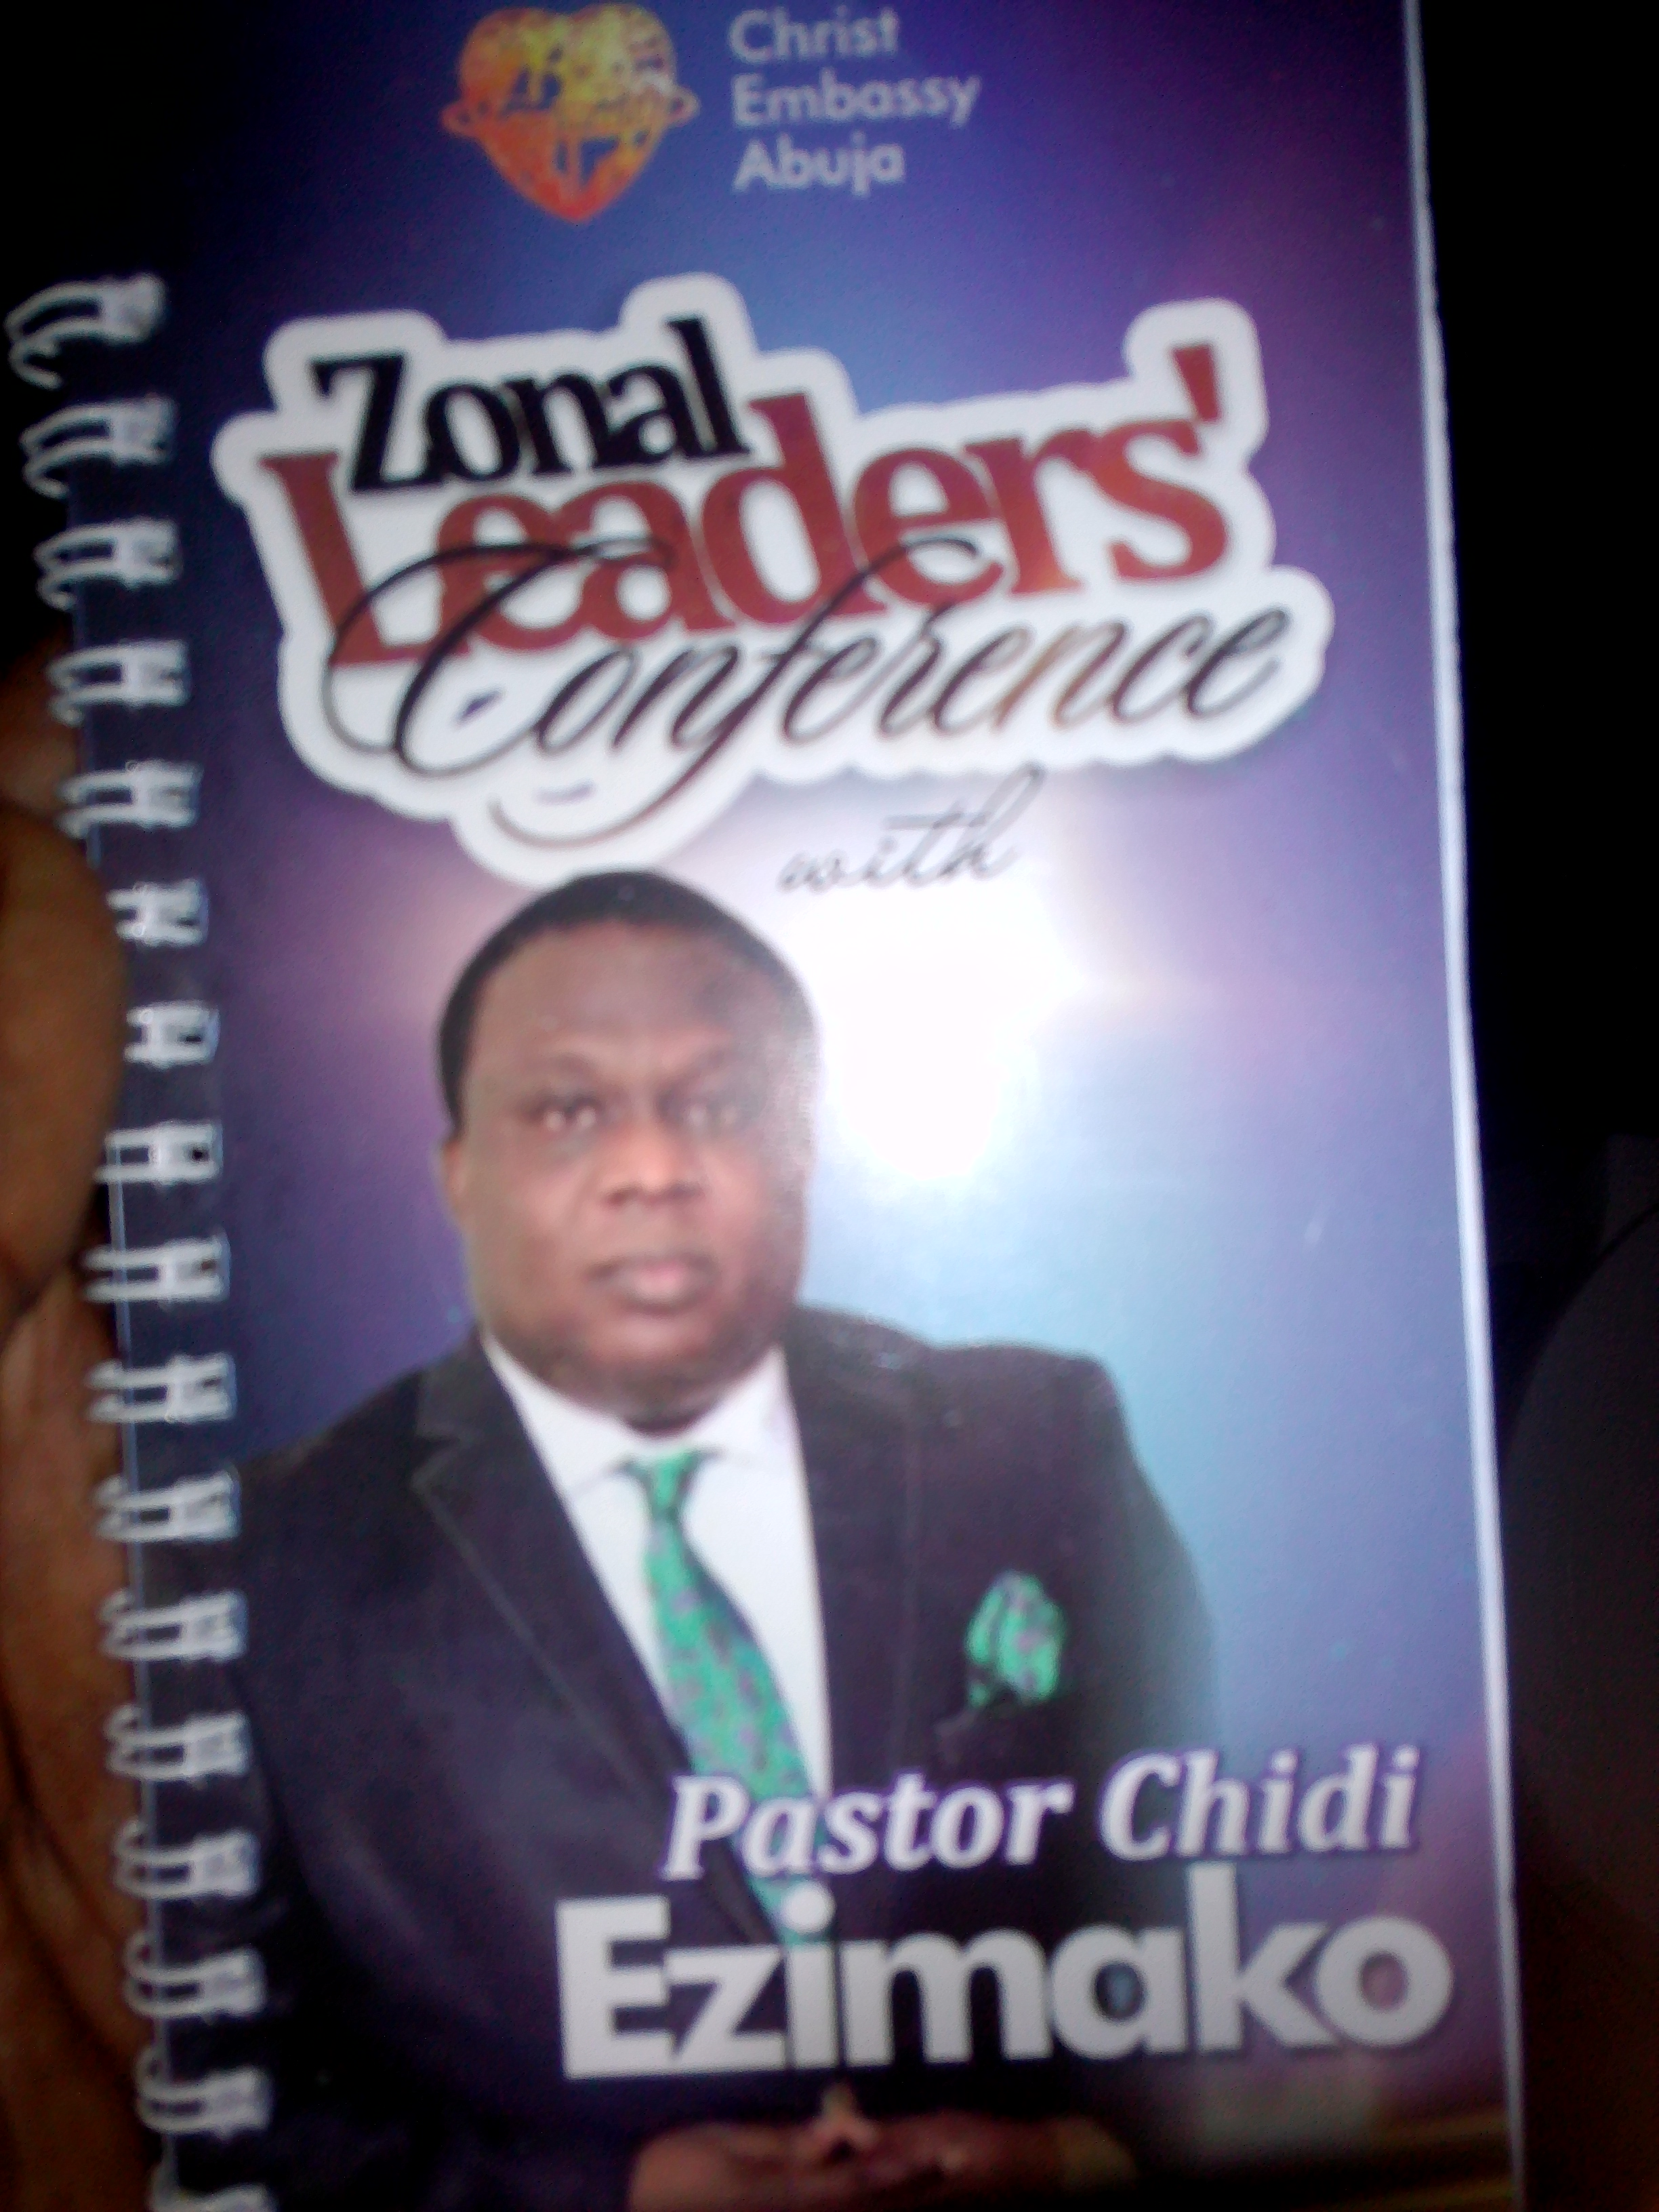 Zonal Leaders conference with Pastor